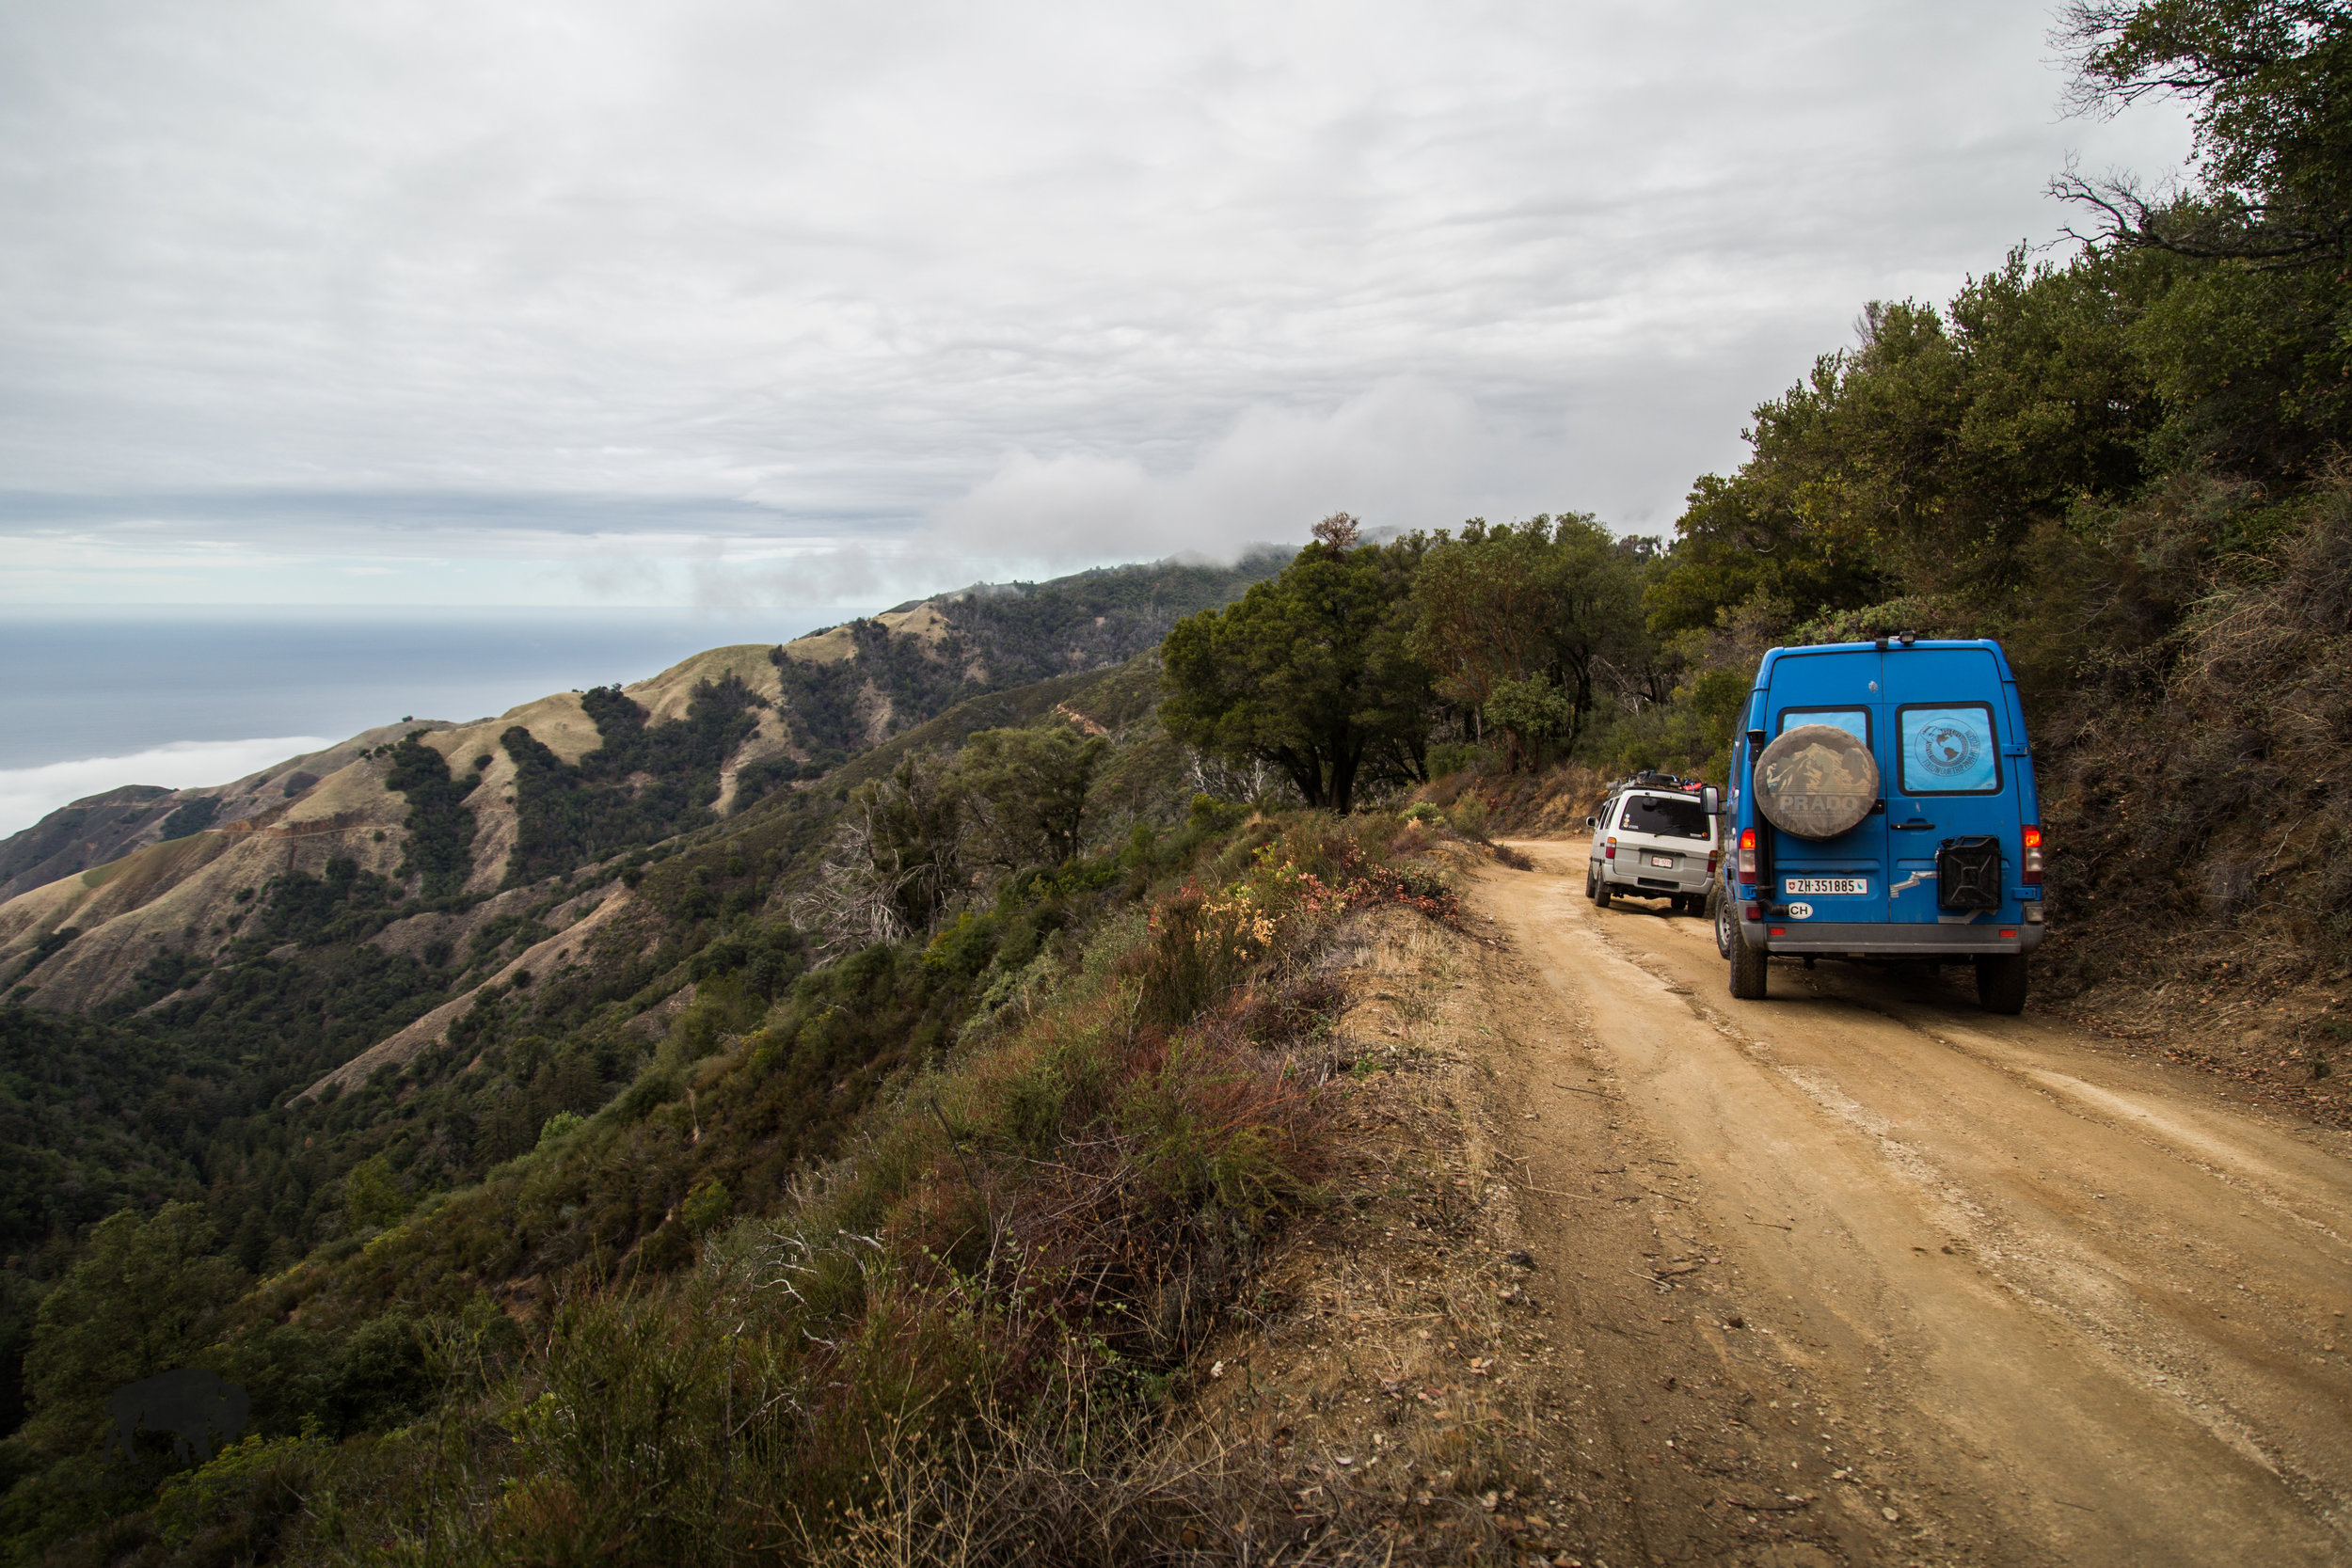 vanlife 8 (15 of 18).jpg